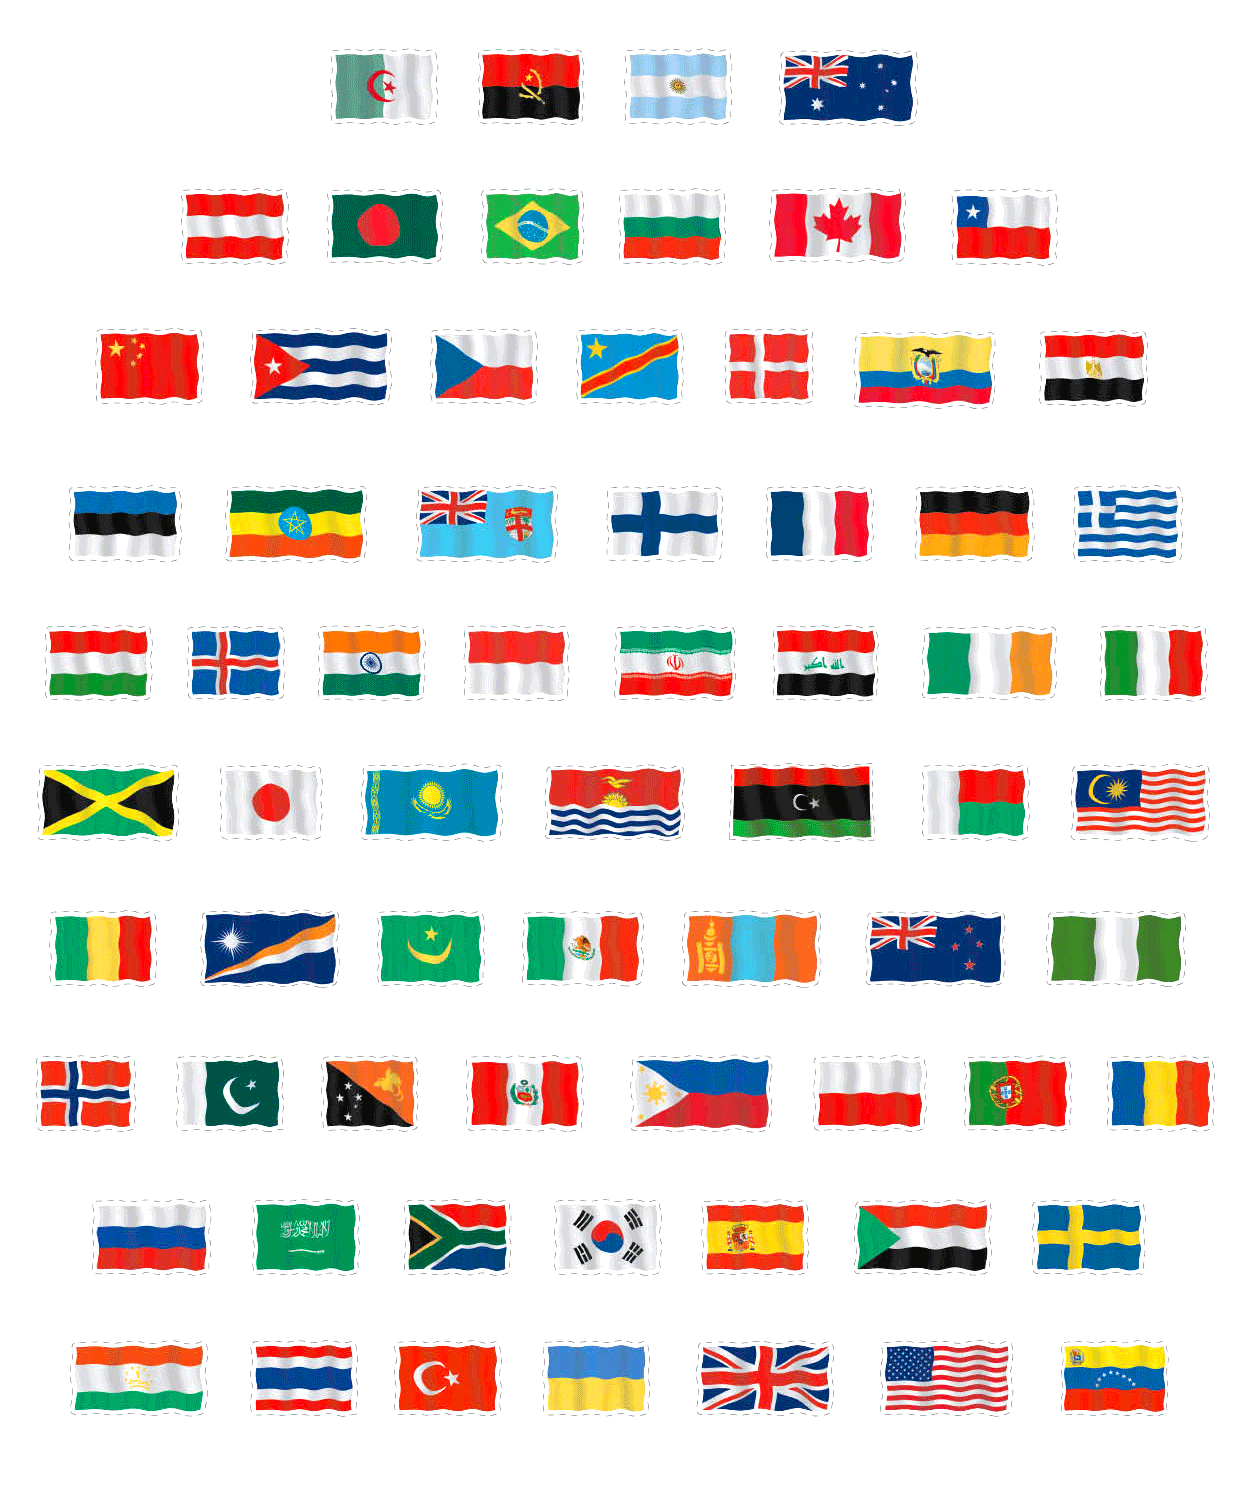 Can You Name These Flags Of The World?